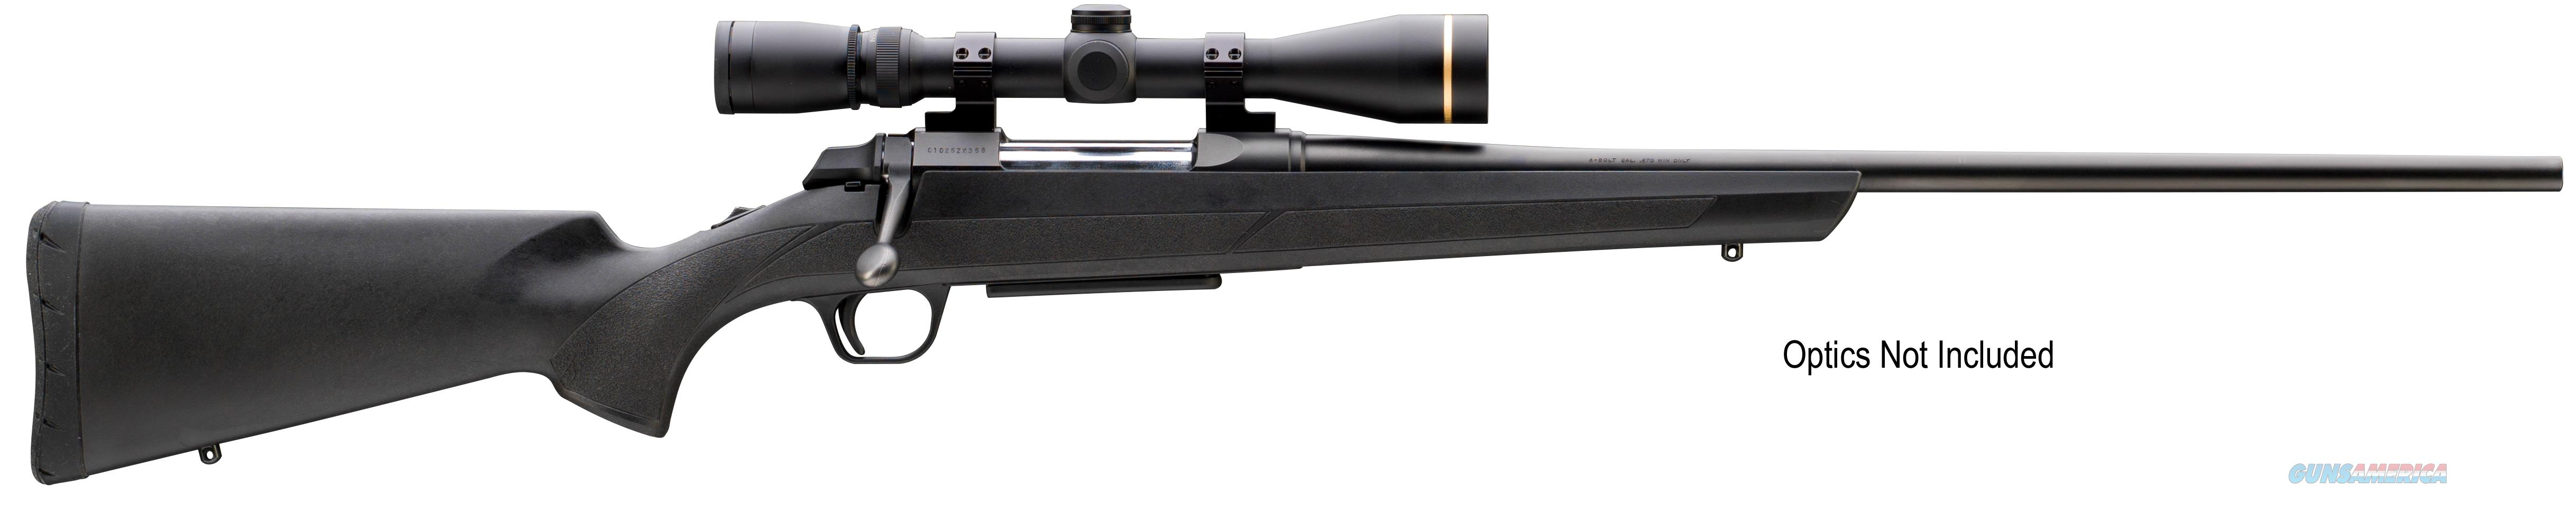 "Browning 035800229 AB3 Composite Stalker Bolt 300 Winchester Magnum 26"" 3+1 Synthetic Black Stock  Guns > Rifles > Browning Rifles > Bolt Action"